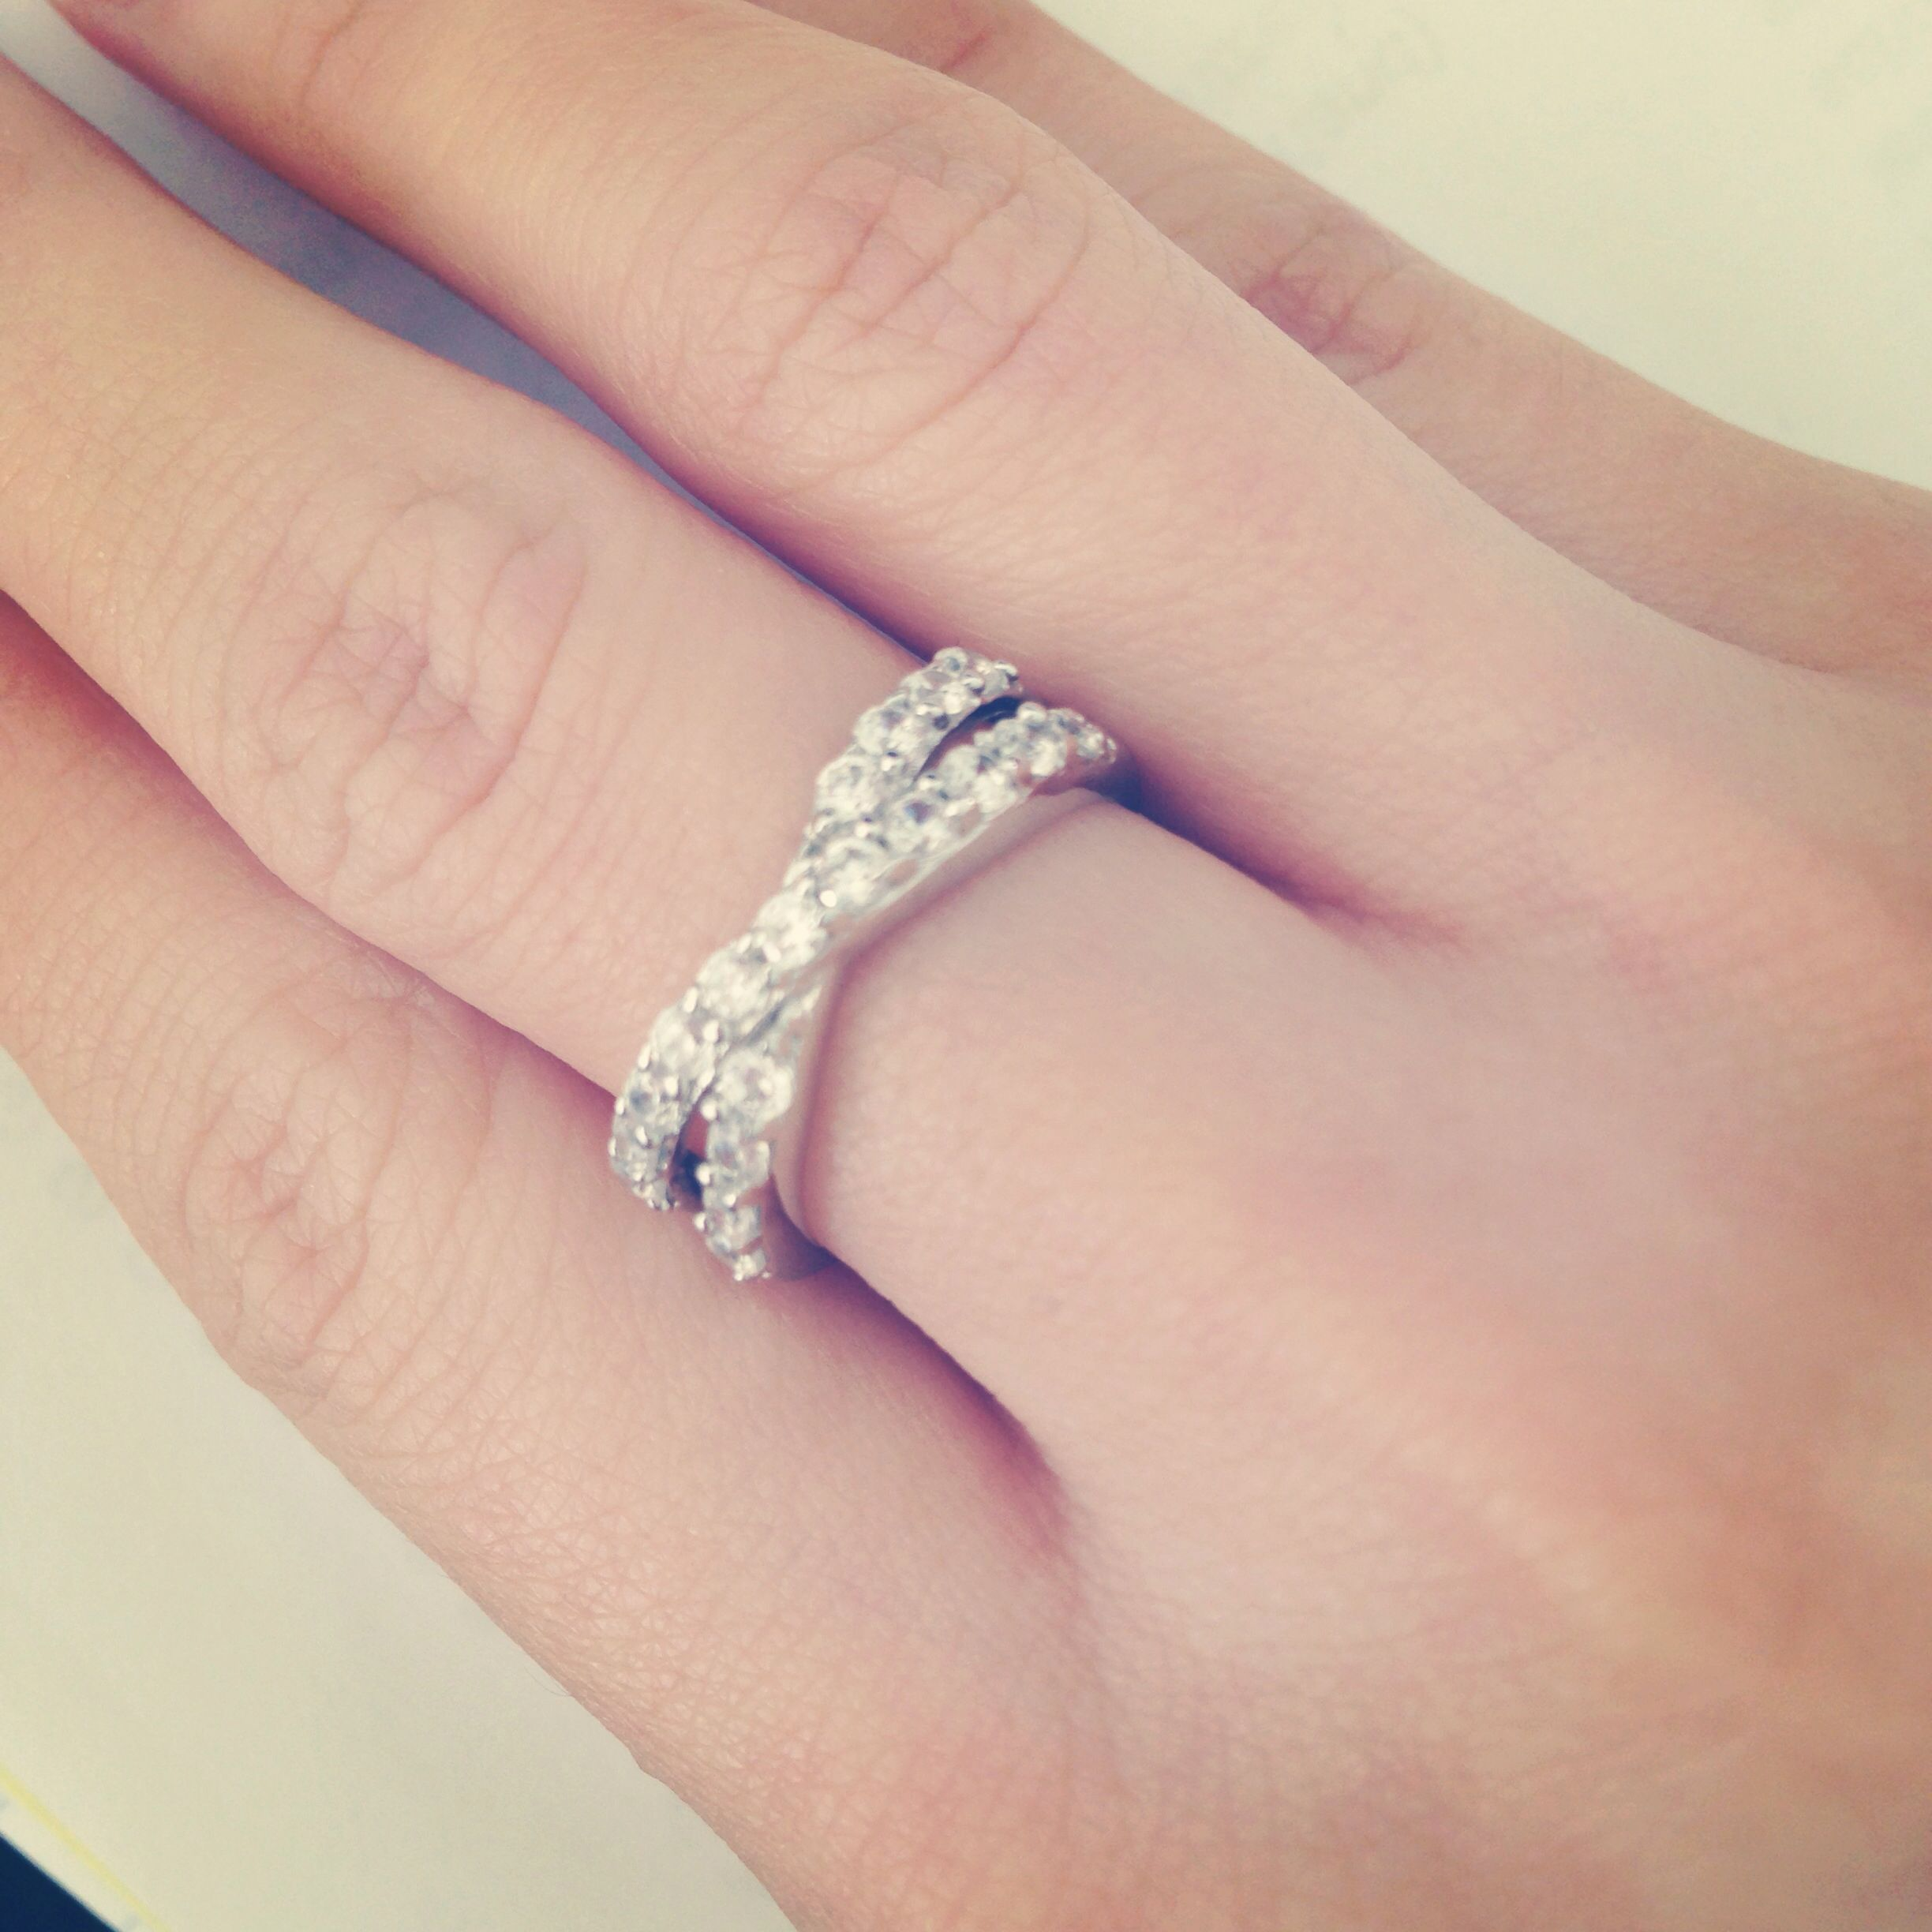 Monthsary ring from the boyfriend | Jewelry☆ | Pinterest ...